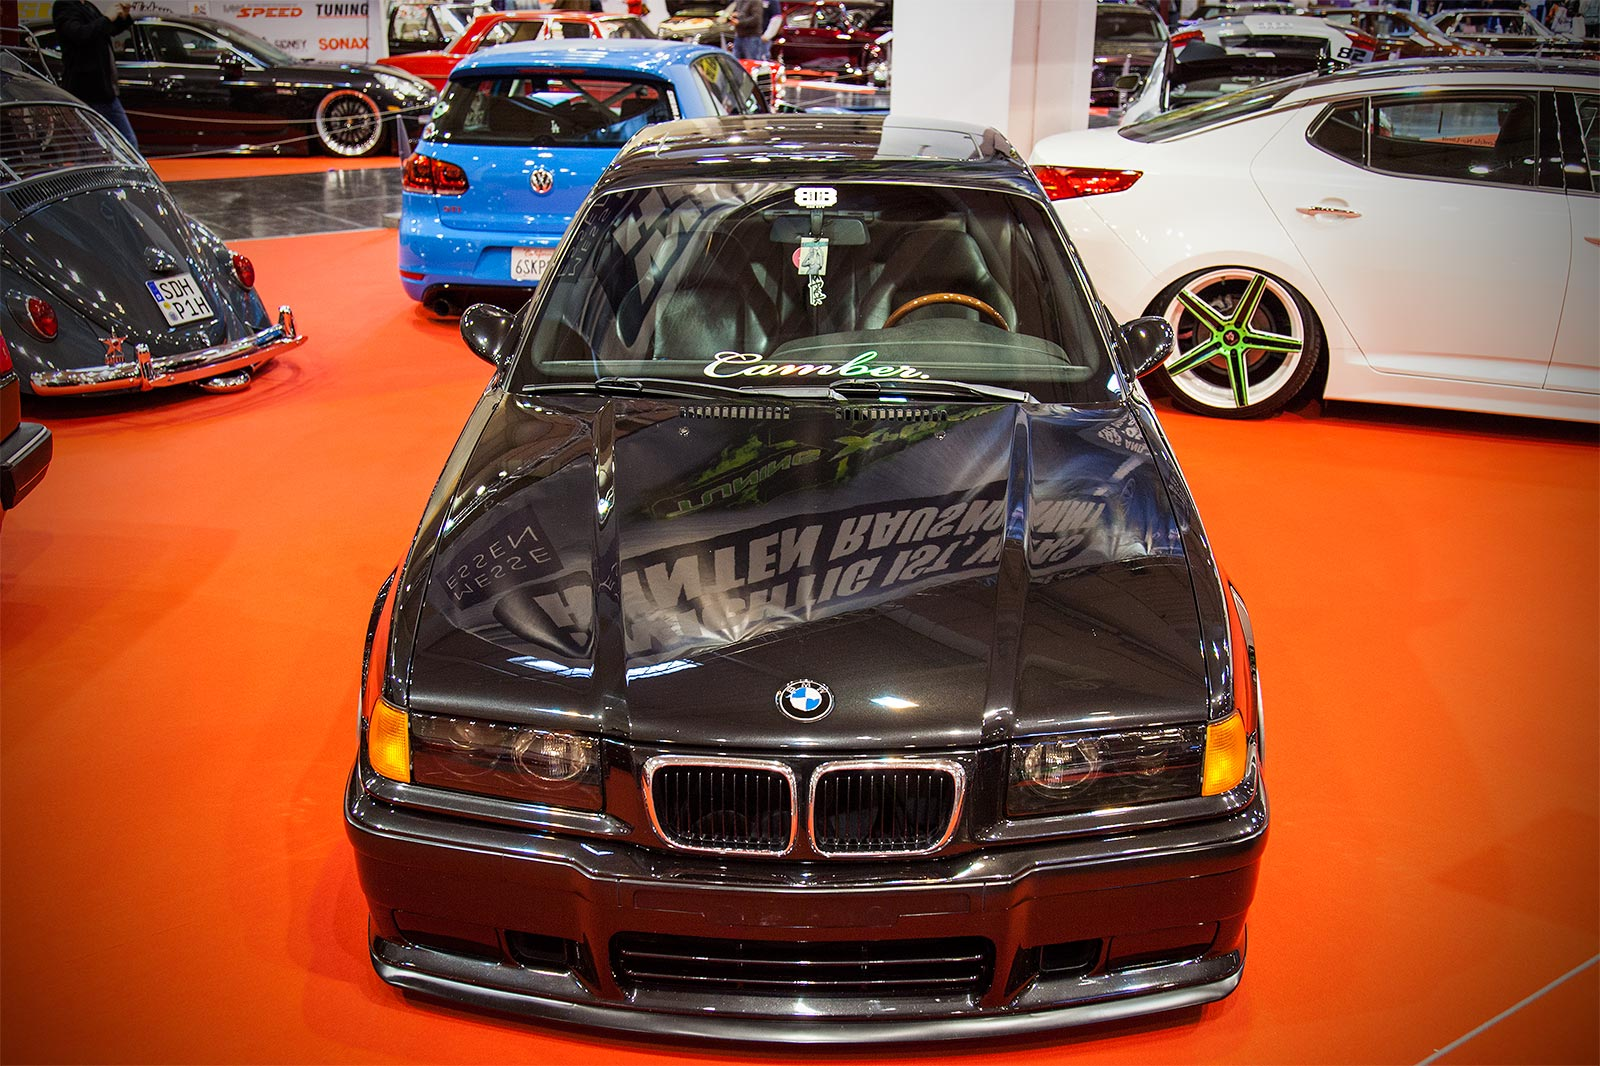 foto bmw 3er coup e36 in der tuning experience ausstellung auf der essen motor show 2015. Black Bedroom Furniture Sets. Home Design Ideas